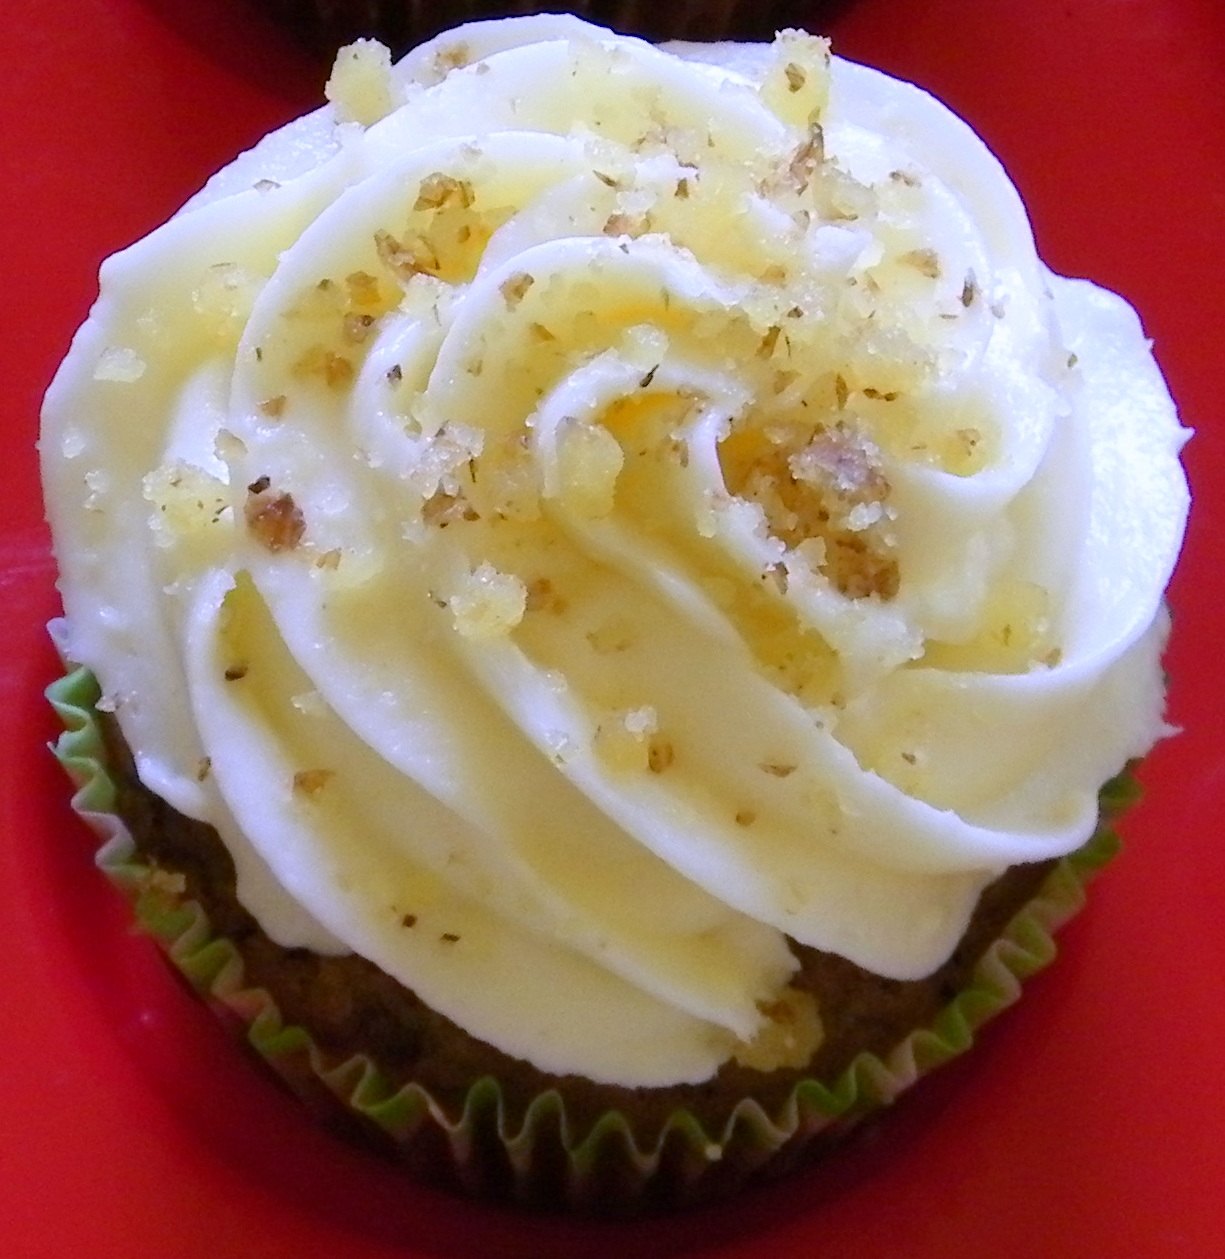 Wilton Carrot Cake Cupcake Recipe